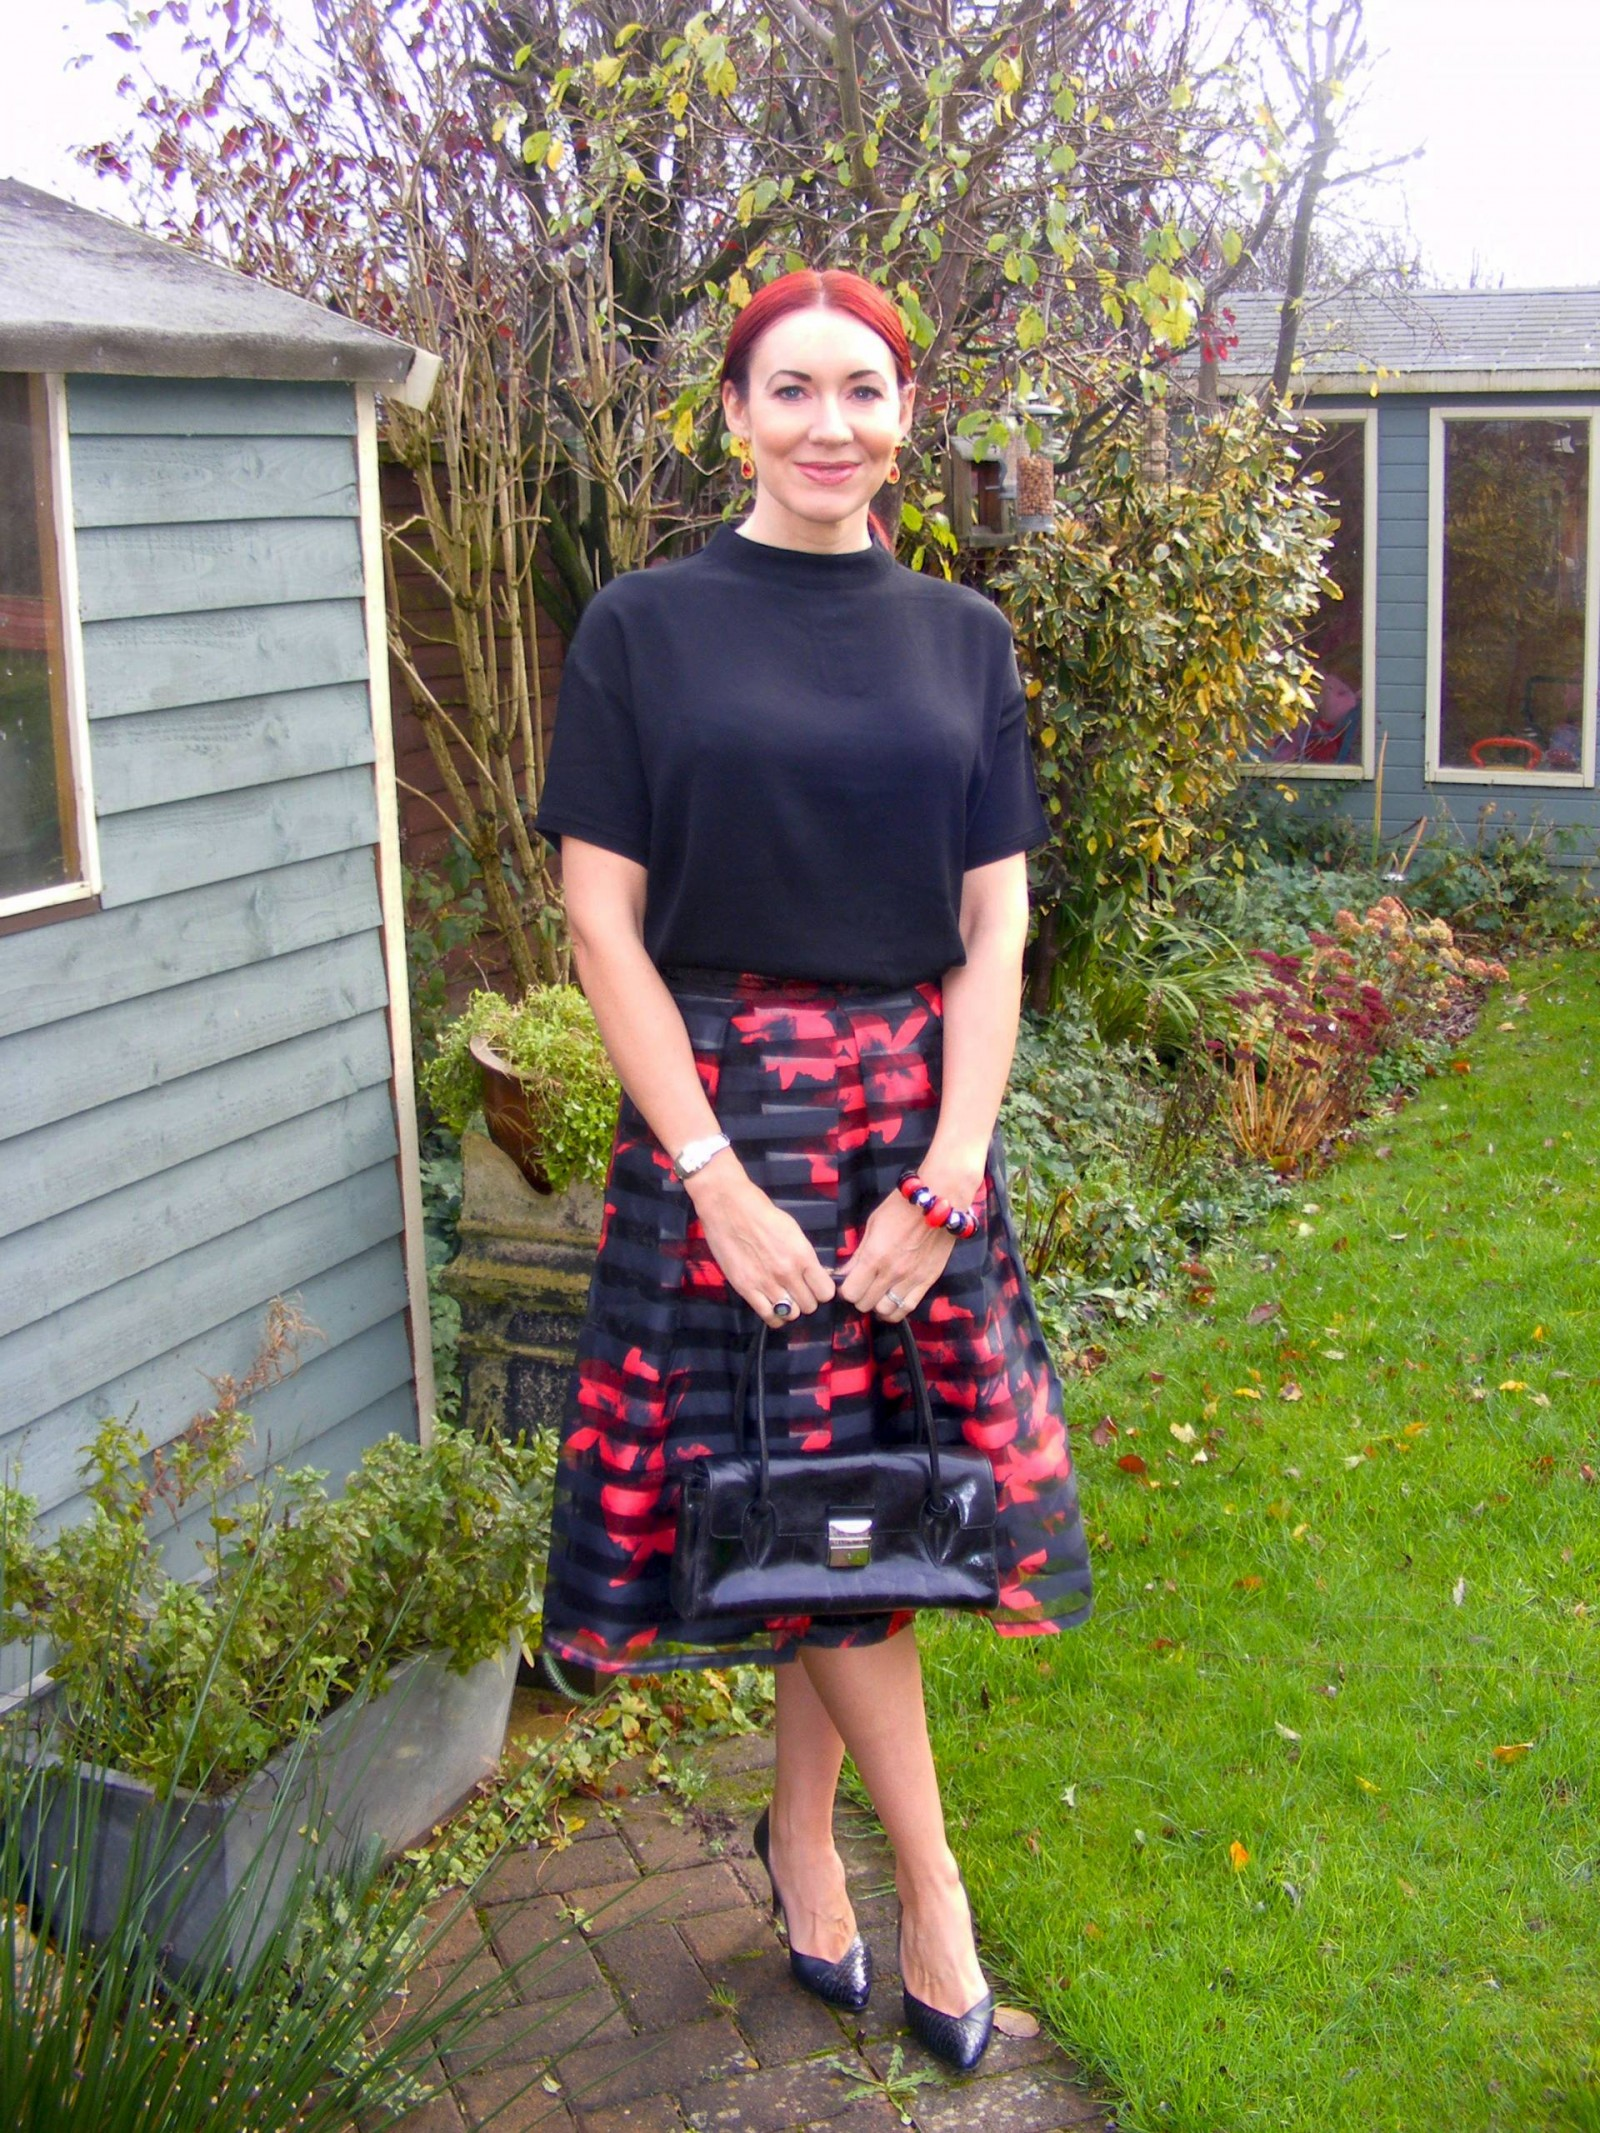 Apricot poppy print skirt and black top